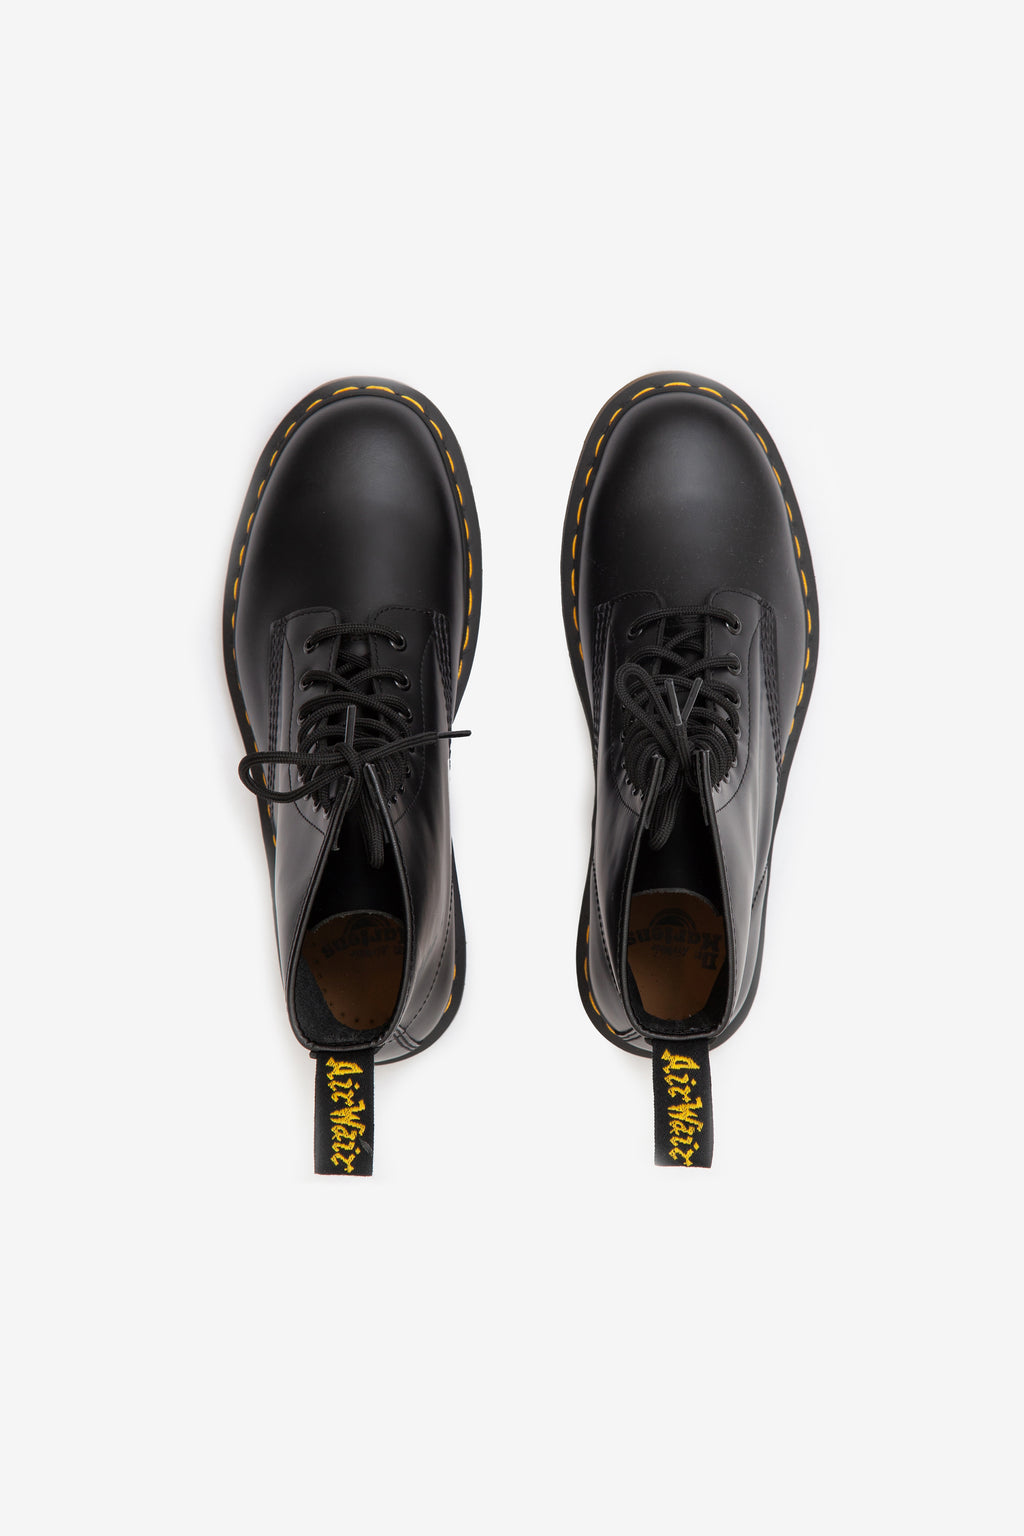 Dr Martens Mens 1460 Smooth Black